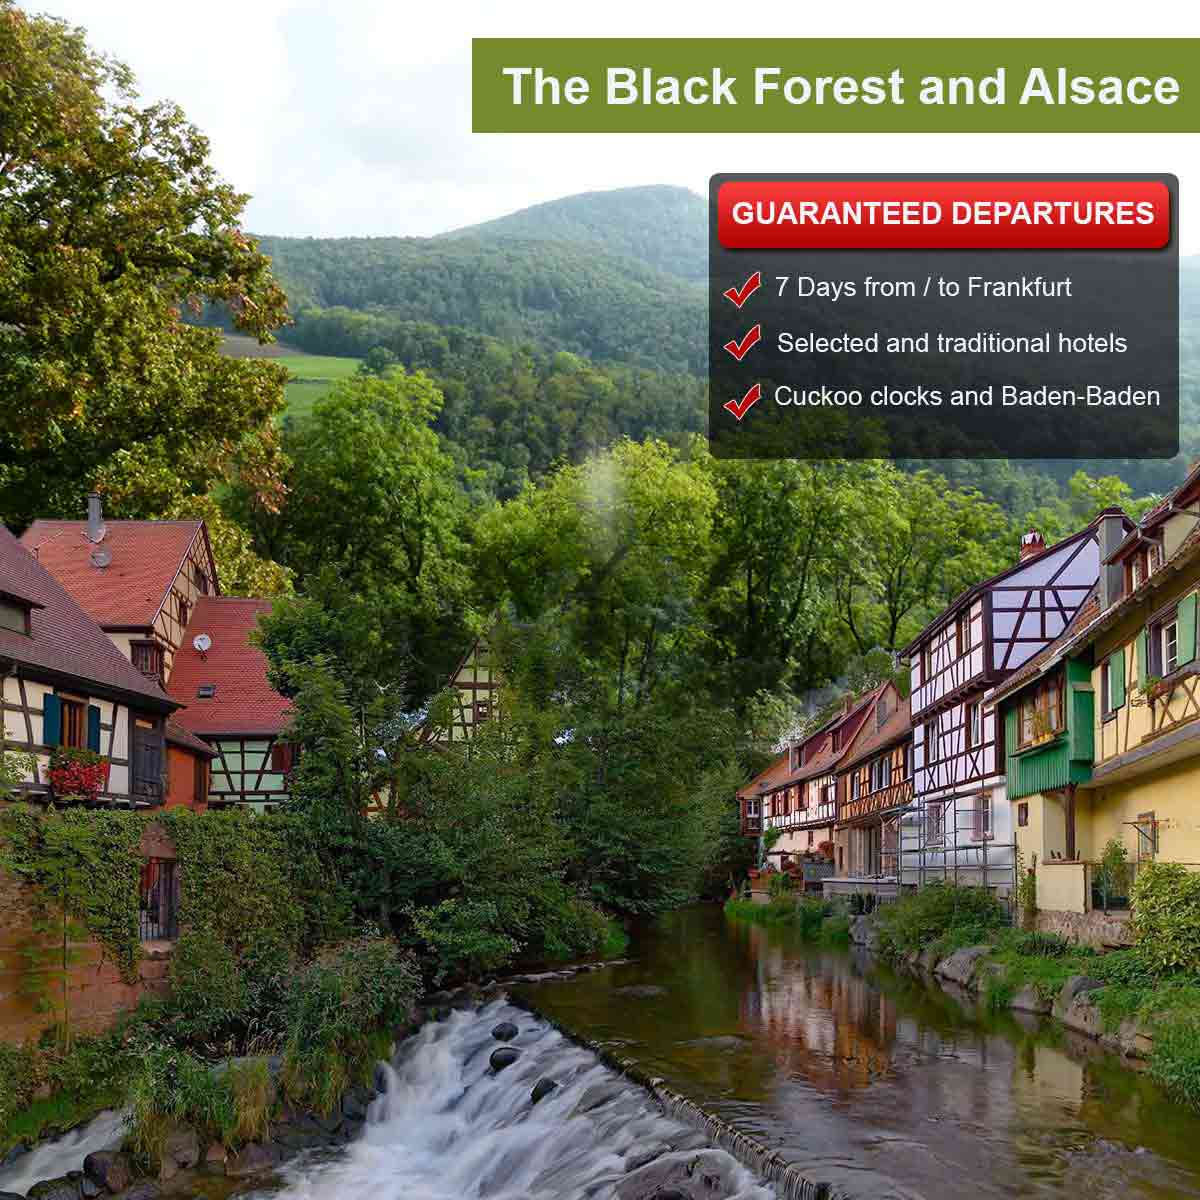 The Black Forest and Alsace